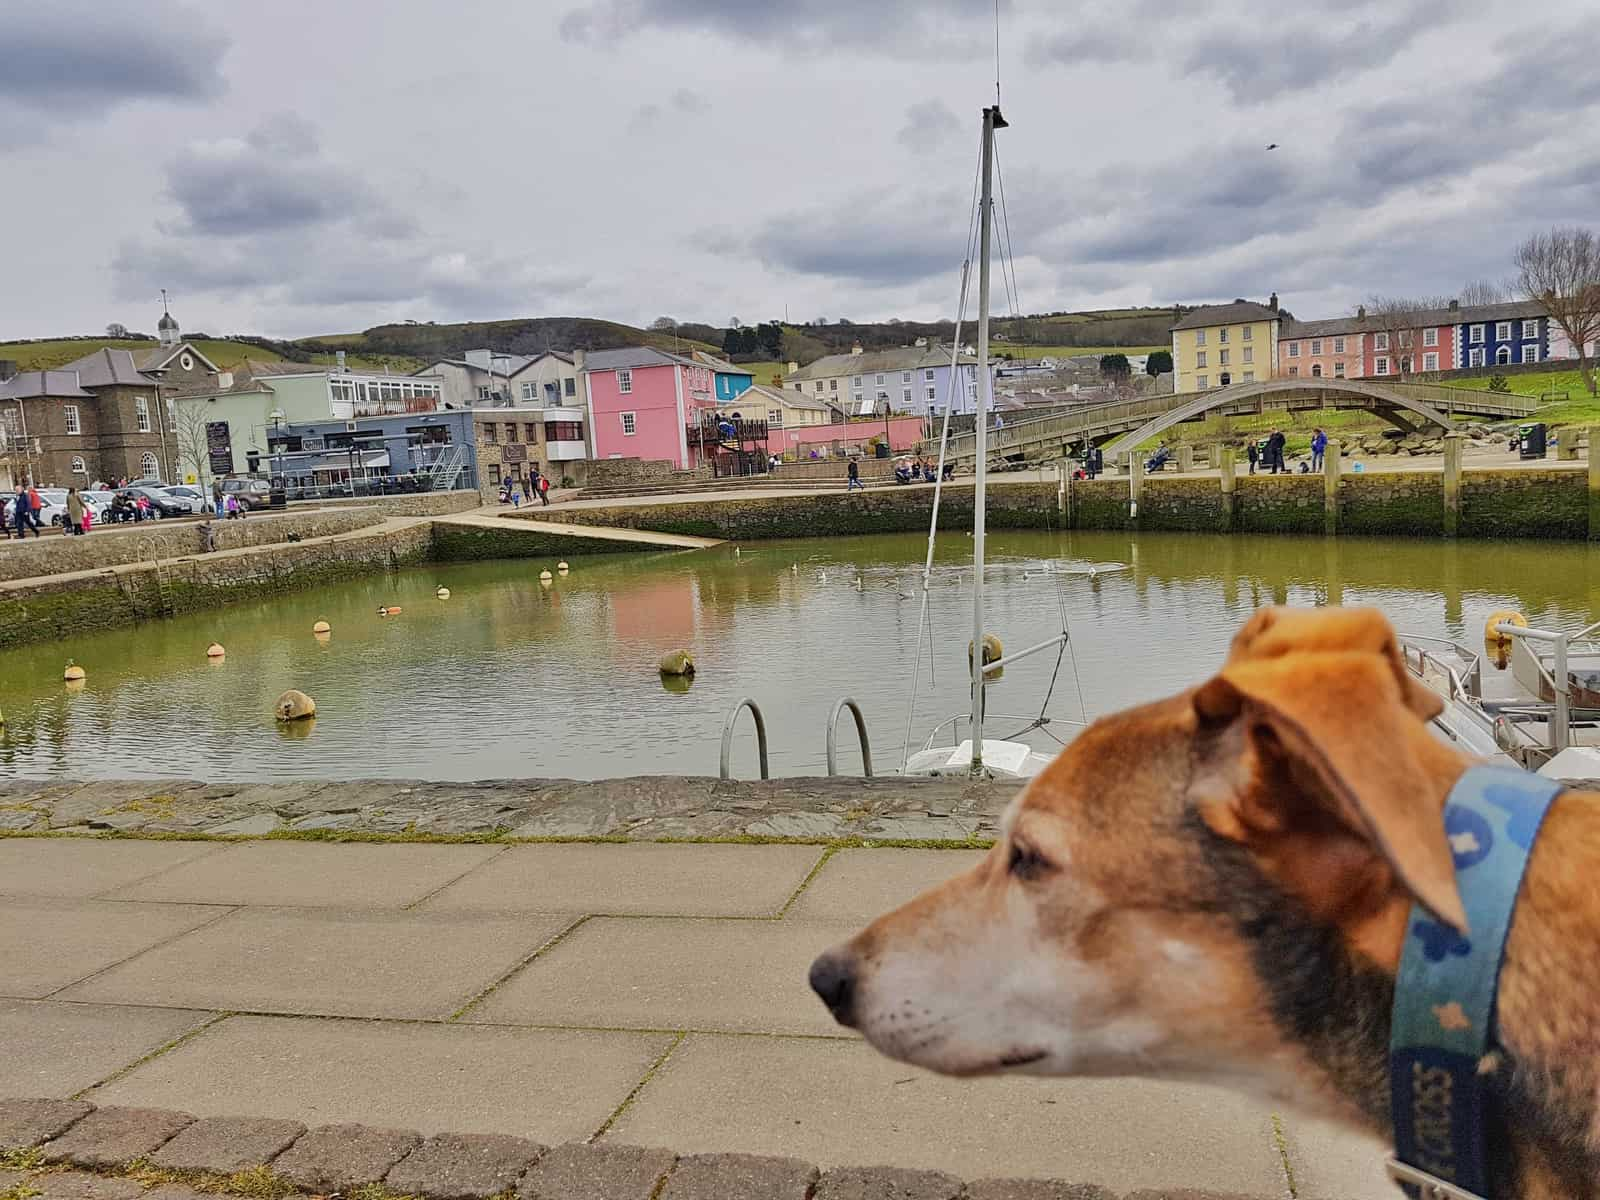 Dog looking out at harbour with bridge and colourful houses in background taken at Aberaeron harbour